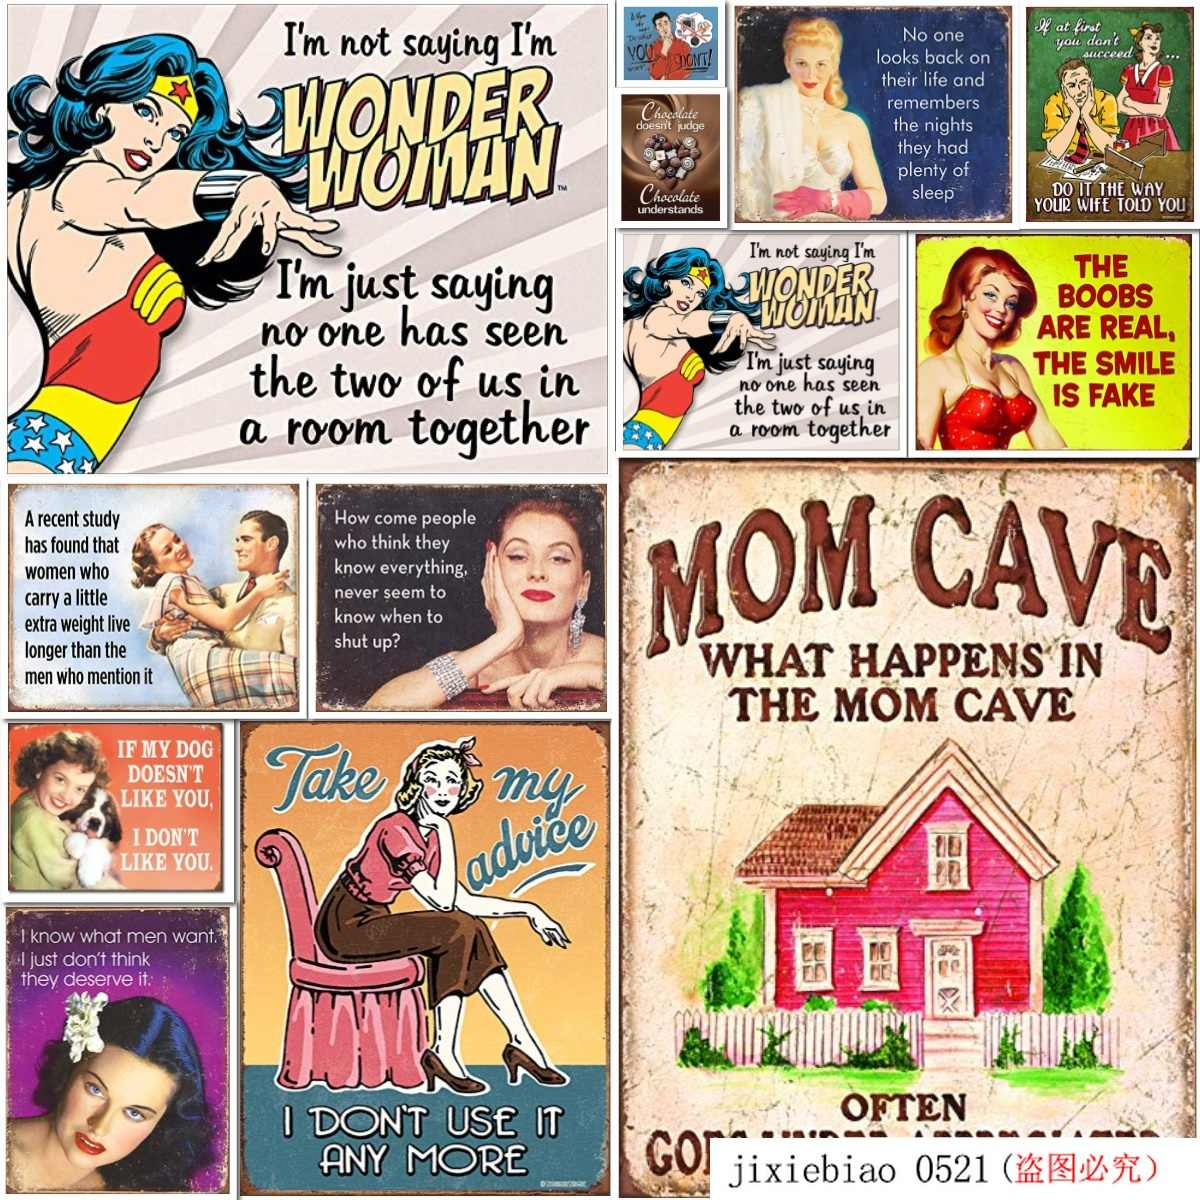 Desperate Enterprises I M Not Saying I M Wonder Woman Tin Sign 16 W X 12 5 H Plaques Signs Aliexpress Wholesale priced tin signs at tinsigns.com made in the united states. aliexpress